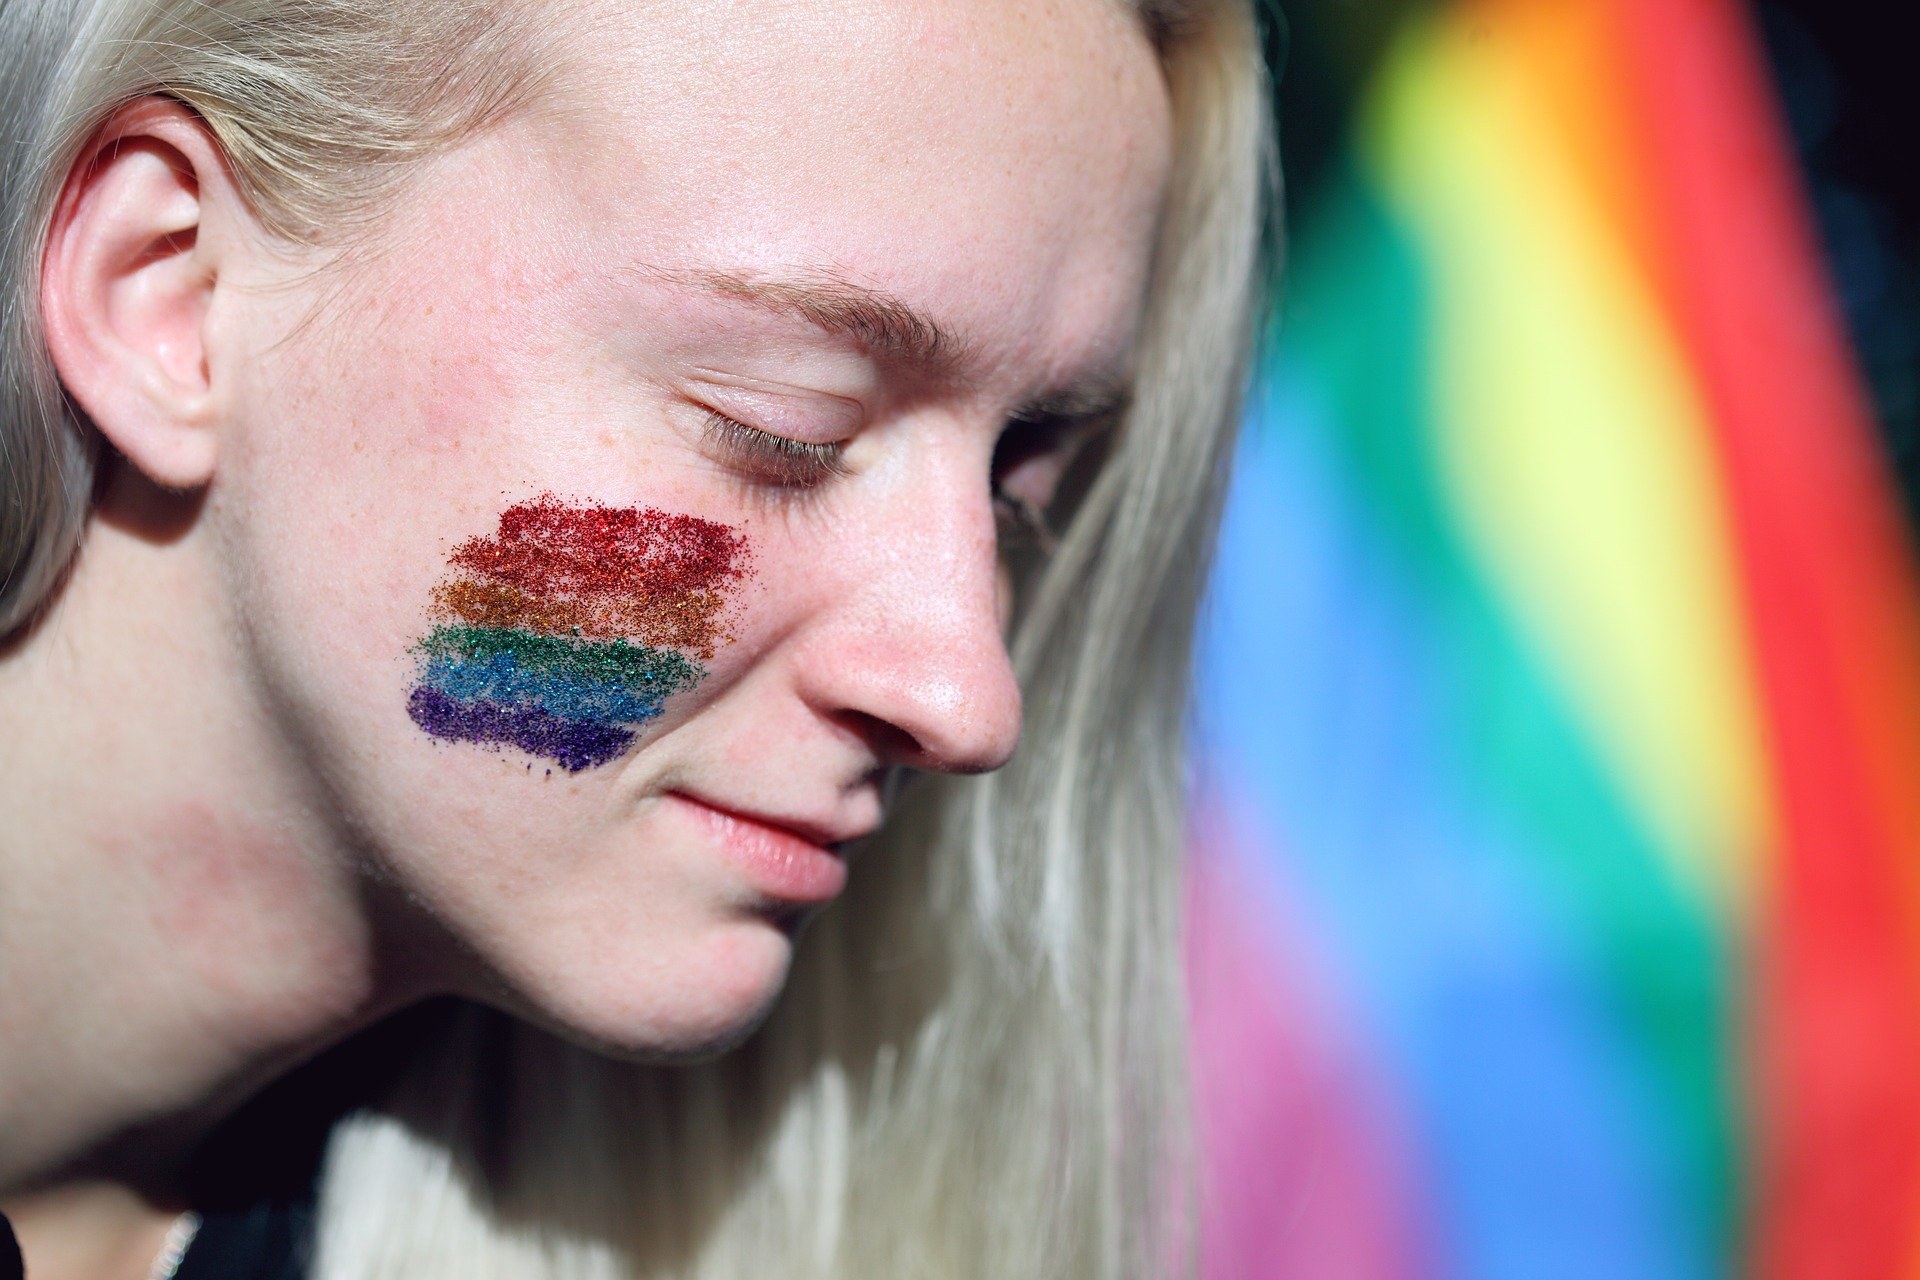 Substance use in the LGBTQ+ community